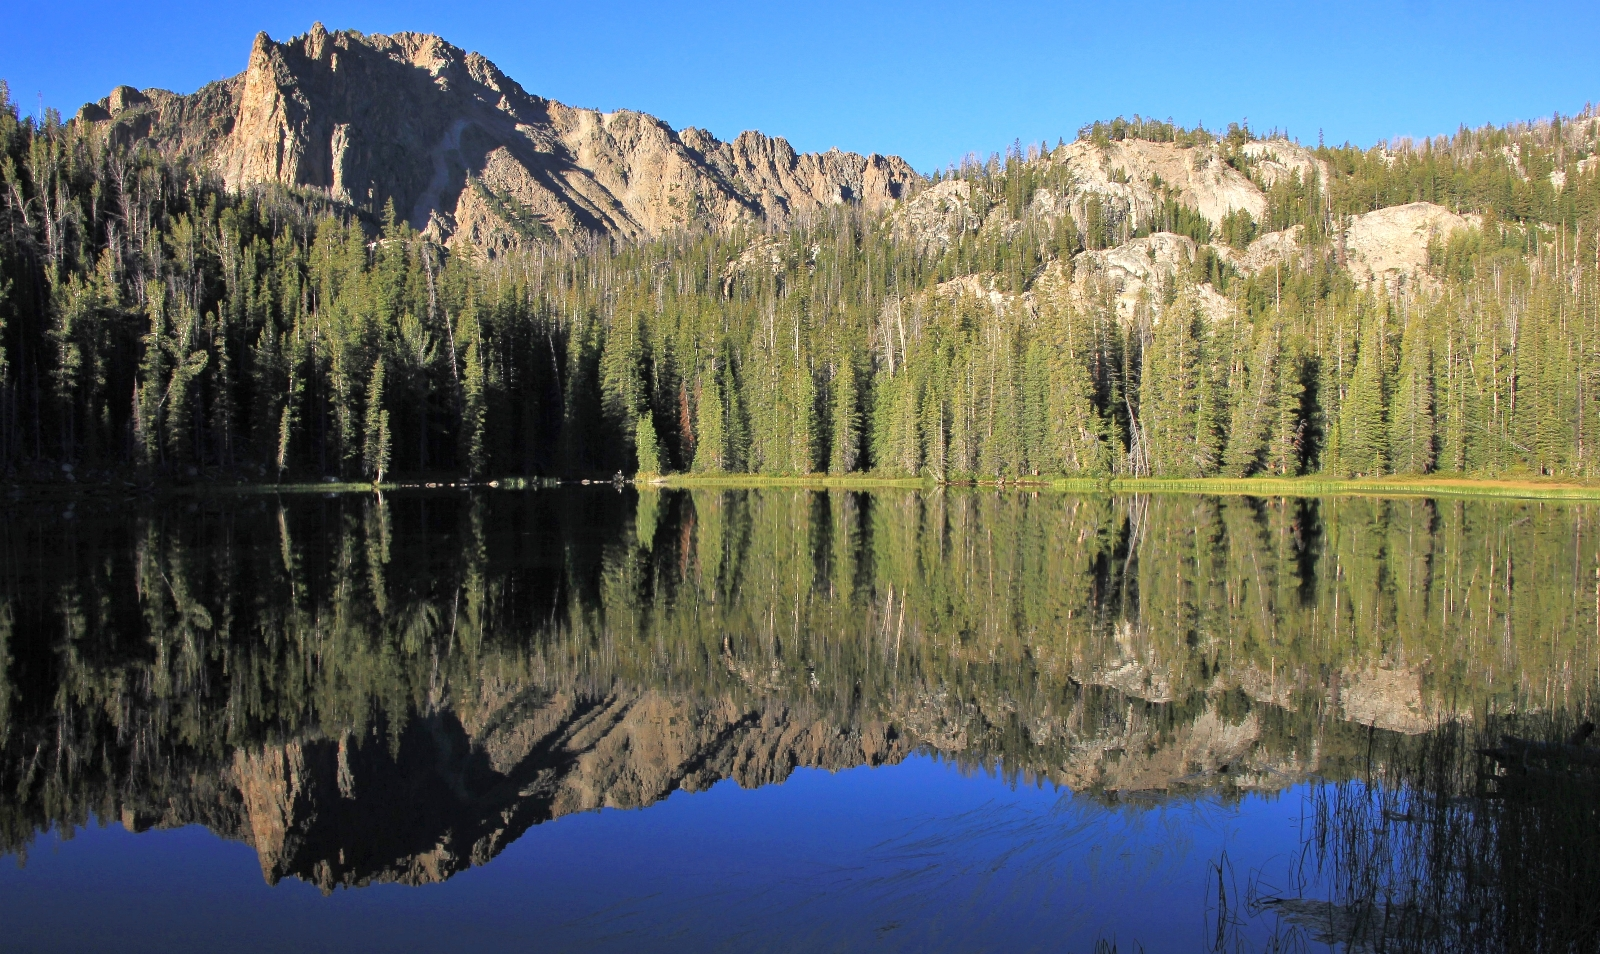 morning view from camp at Willow Lake